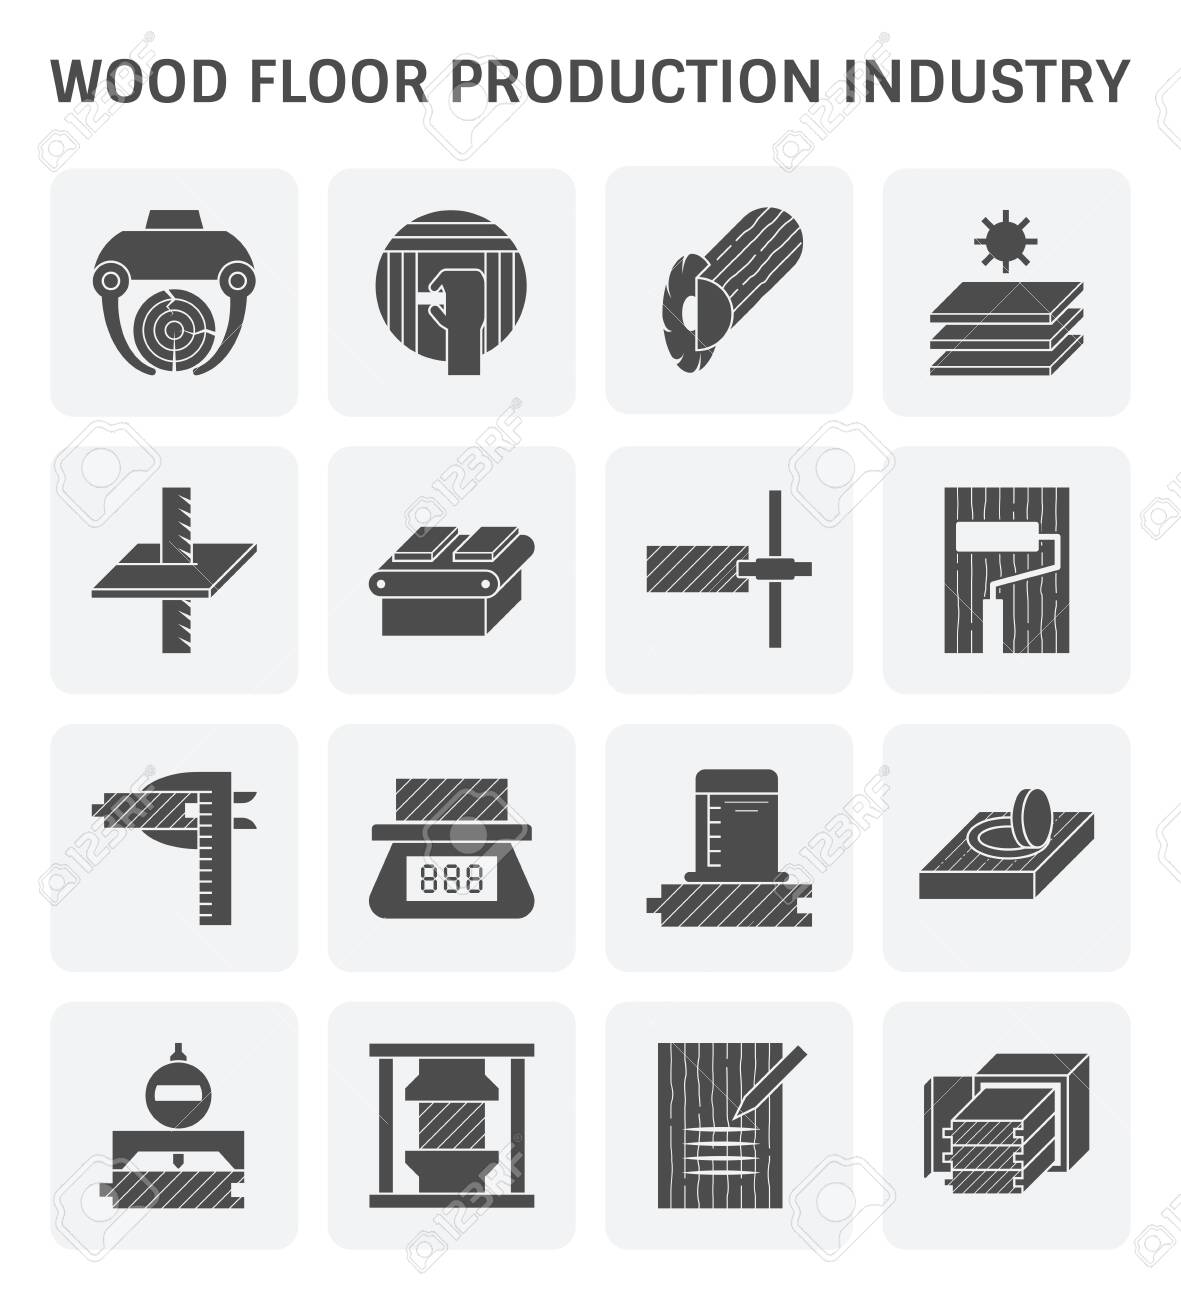 Wood floor production industry and wood testing icon set for wood production industry design element and wood testing design element. - 138660049